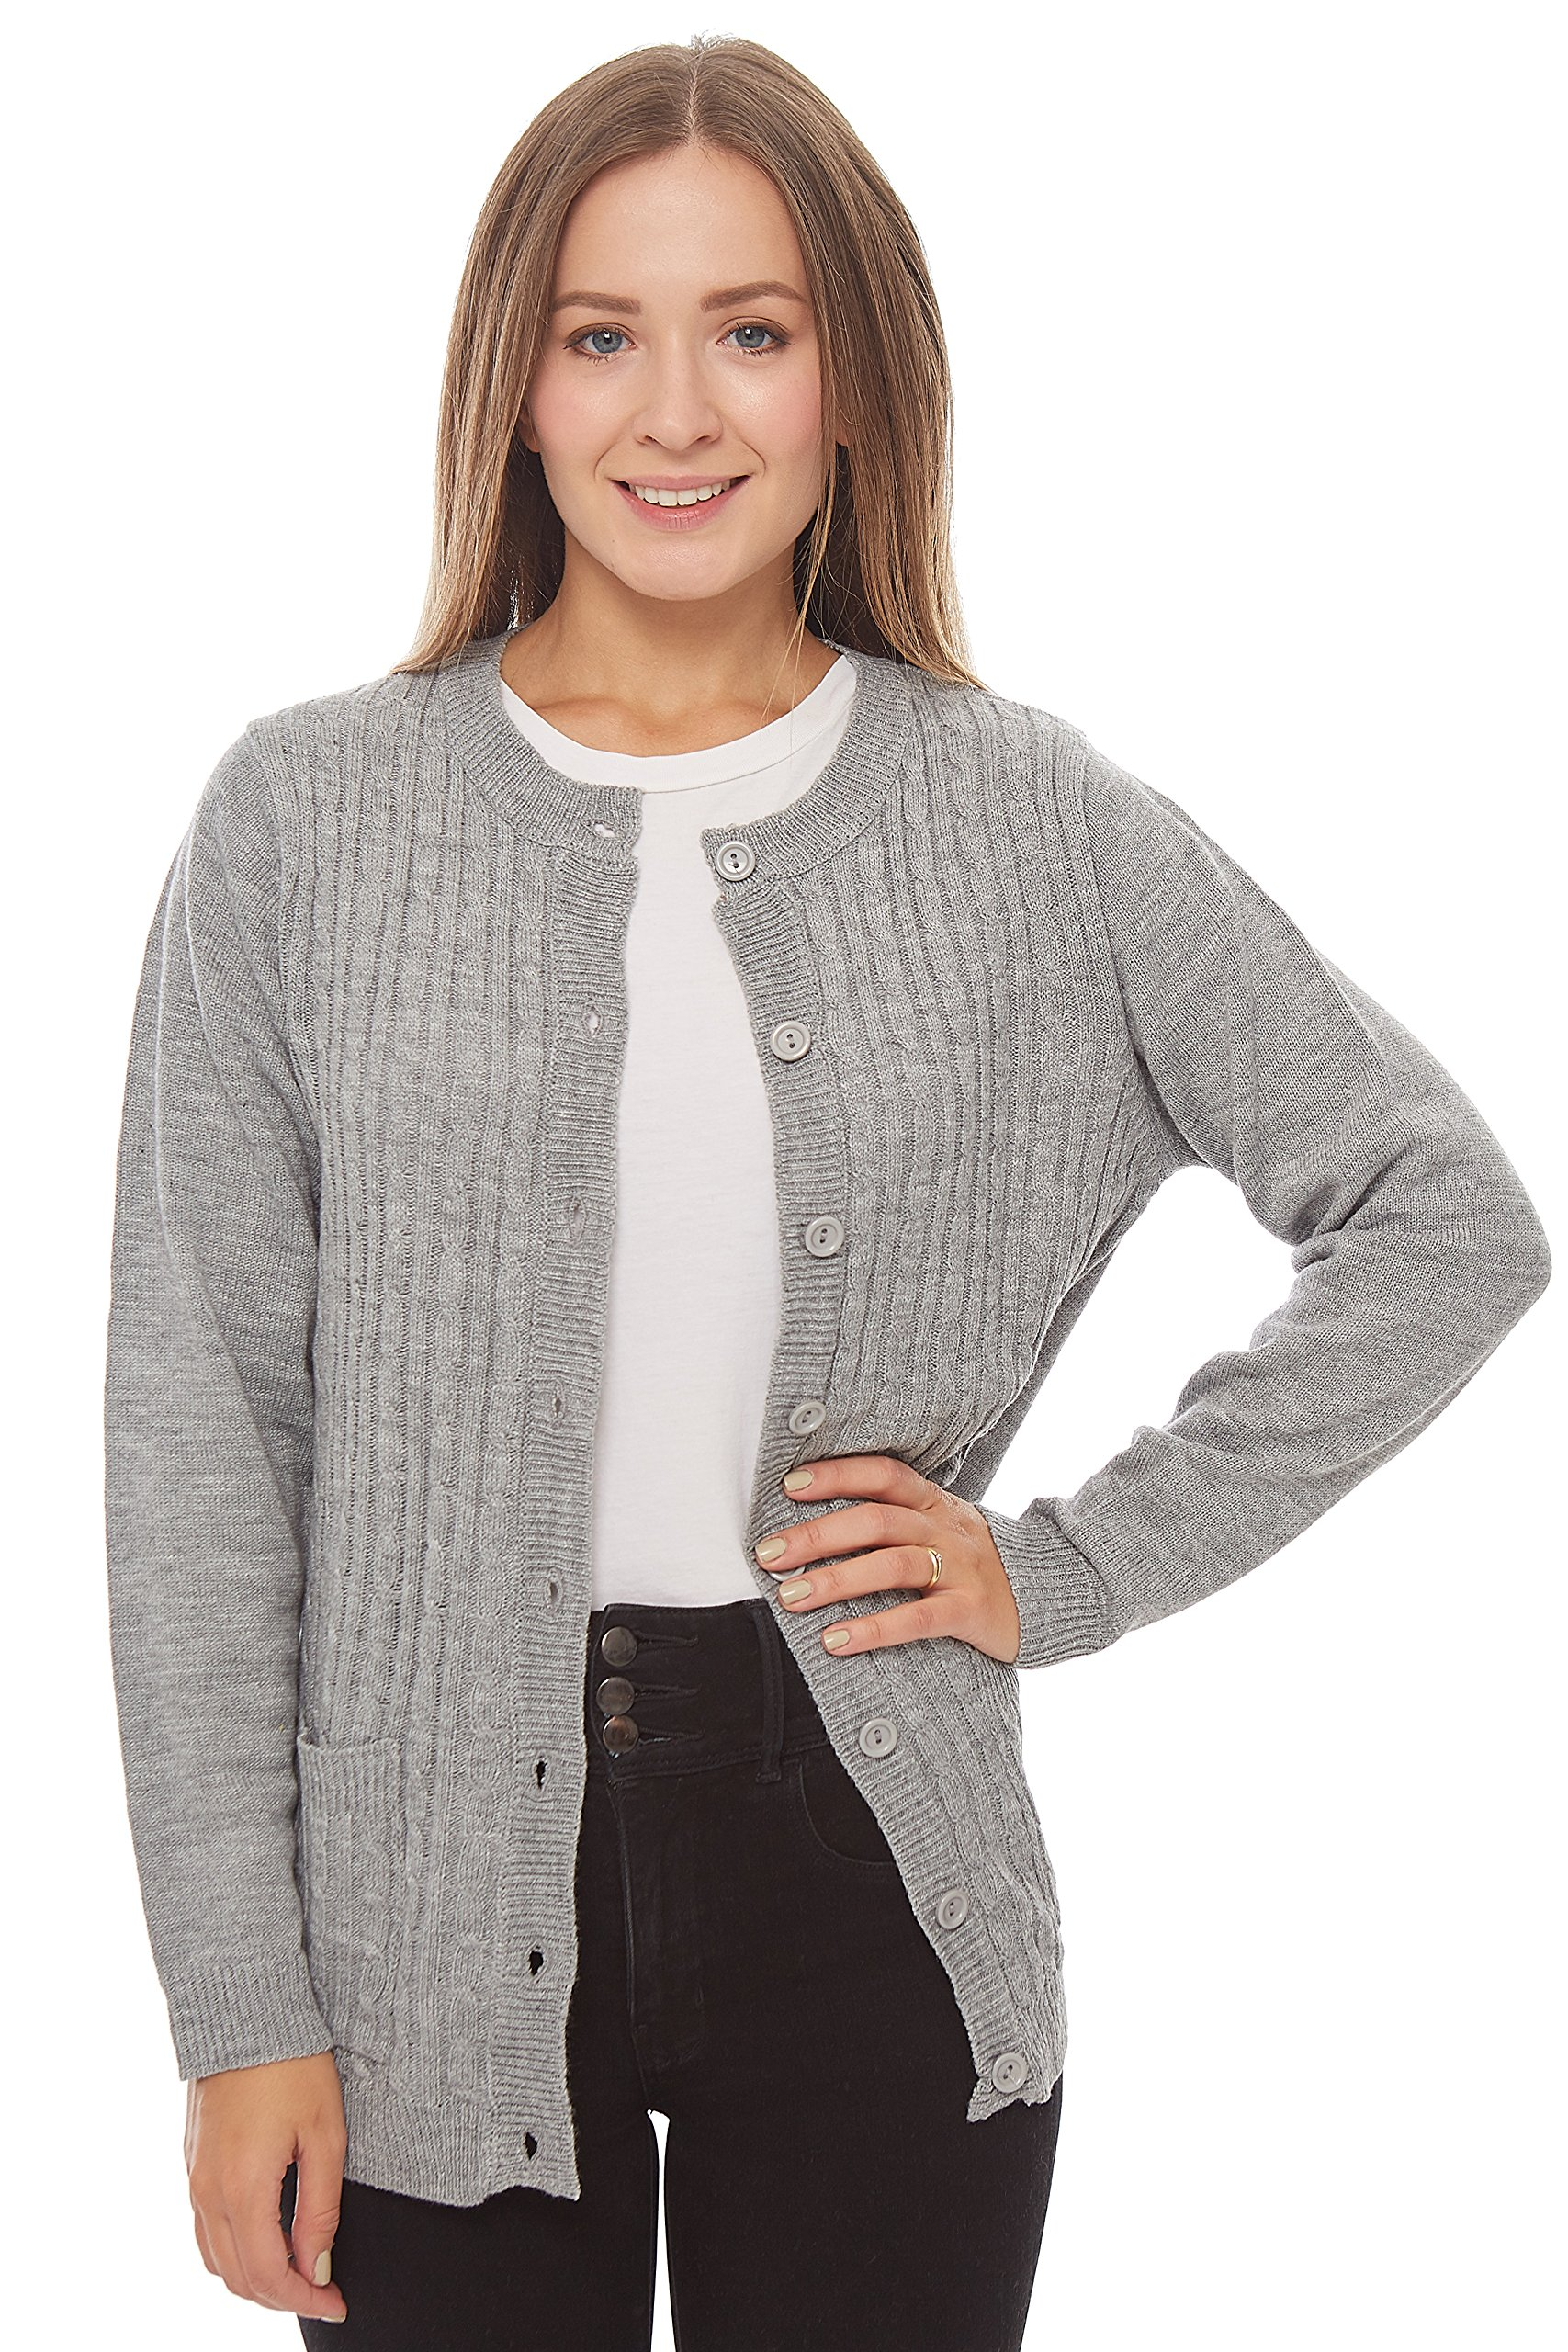 Knit Minded Long Sleeve Two Pocket Cable Knit Cardigan Sweater Heather Grey 1X